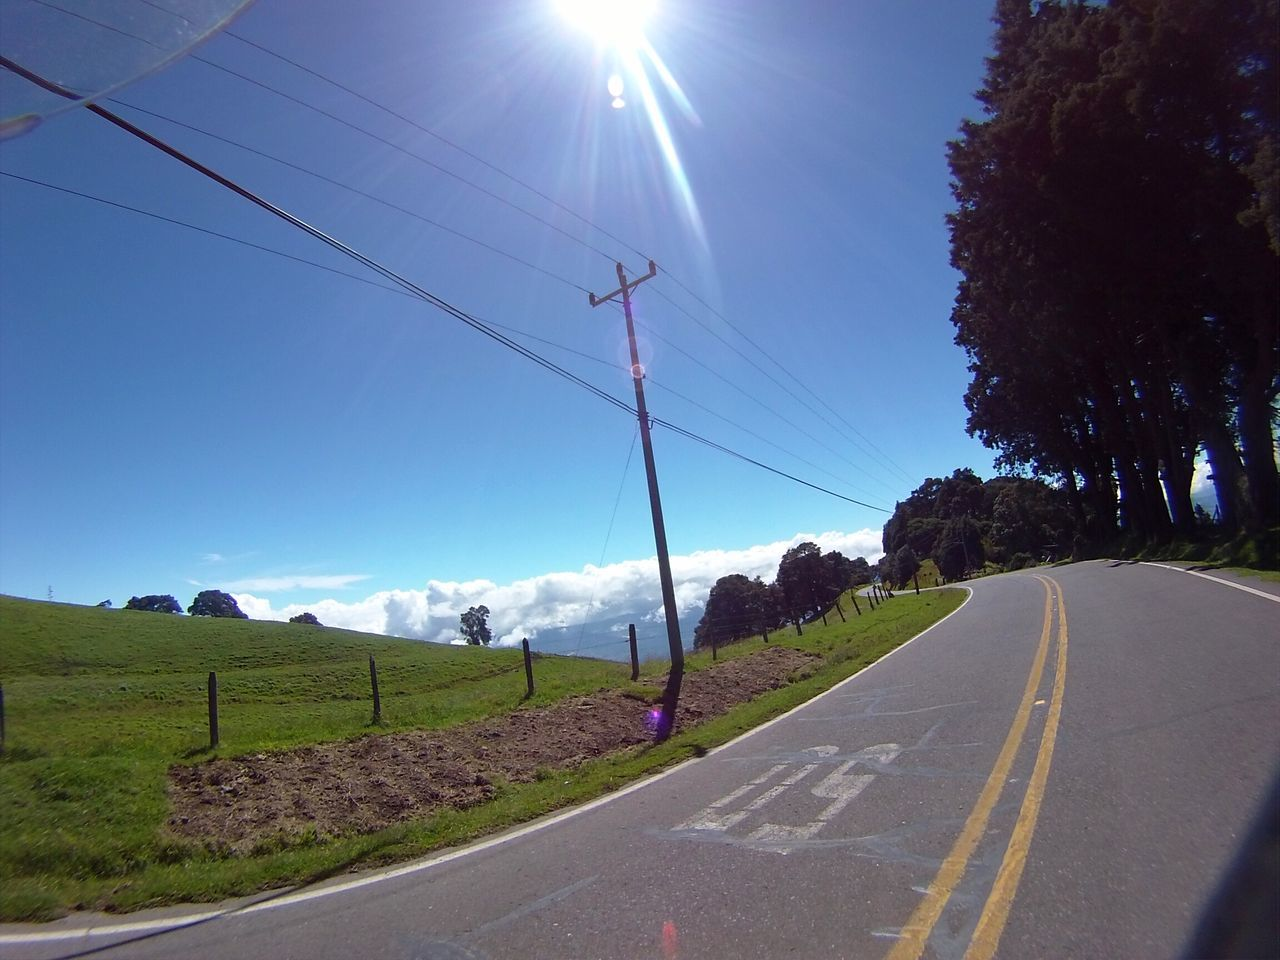 Road to heaven Road Sky Costa Rica Action Camera Landscape Motorcycle Diaries Biketour Rider Clouds My Year My View While Riding My Bike While Driving EyeEmNewHere